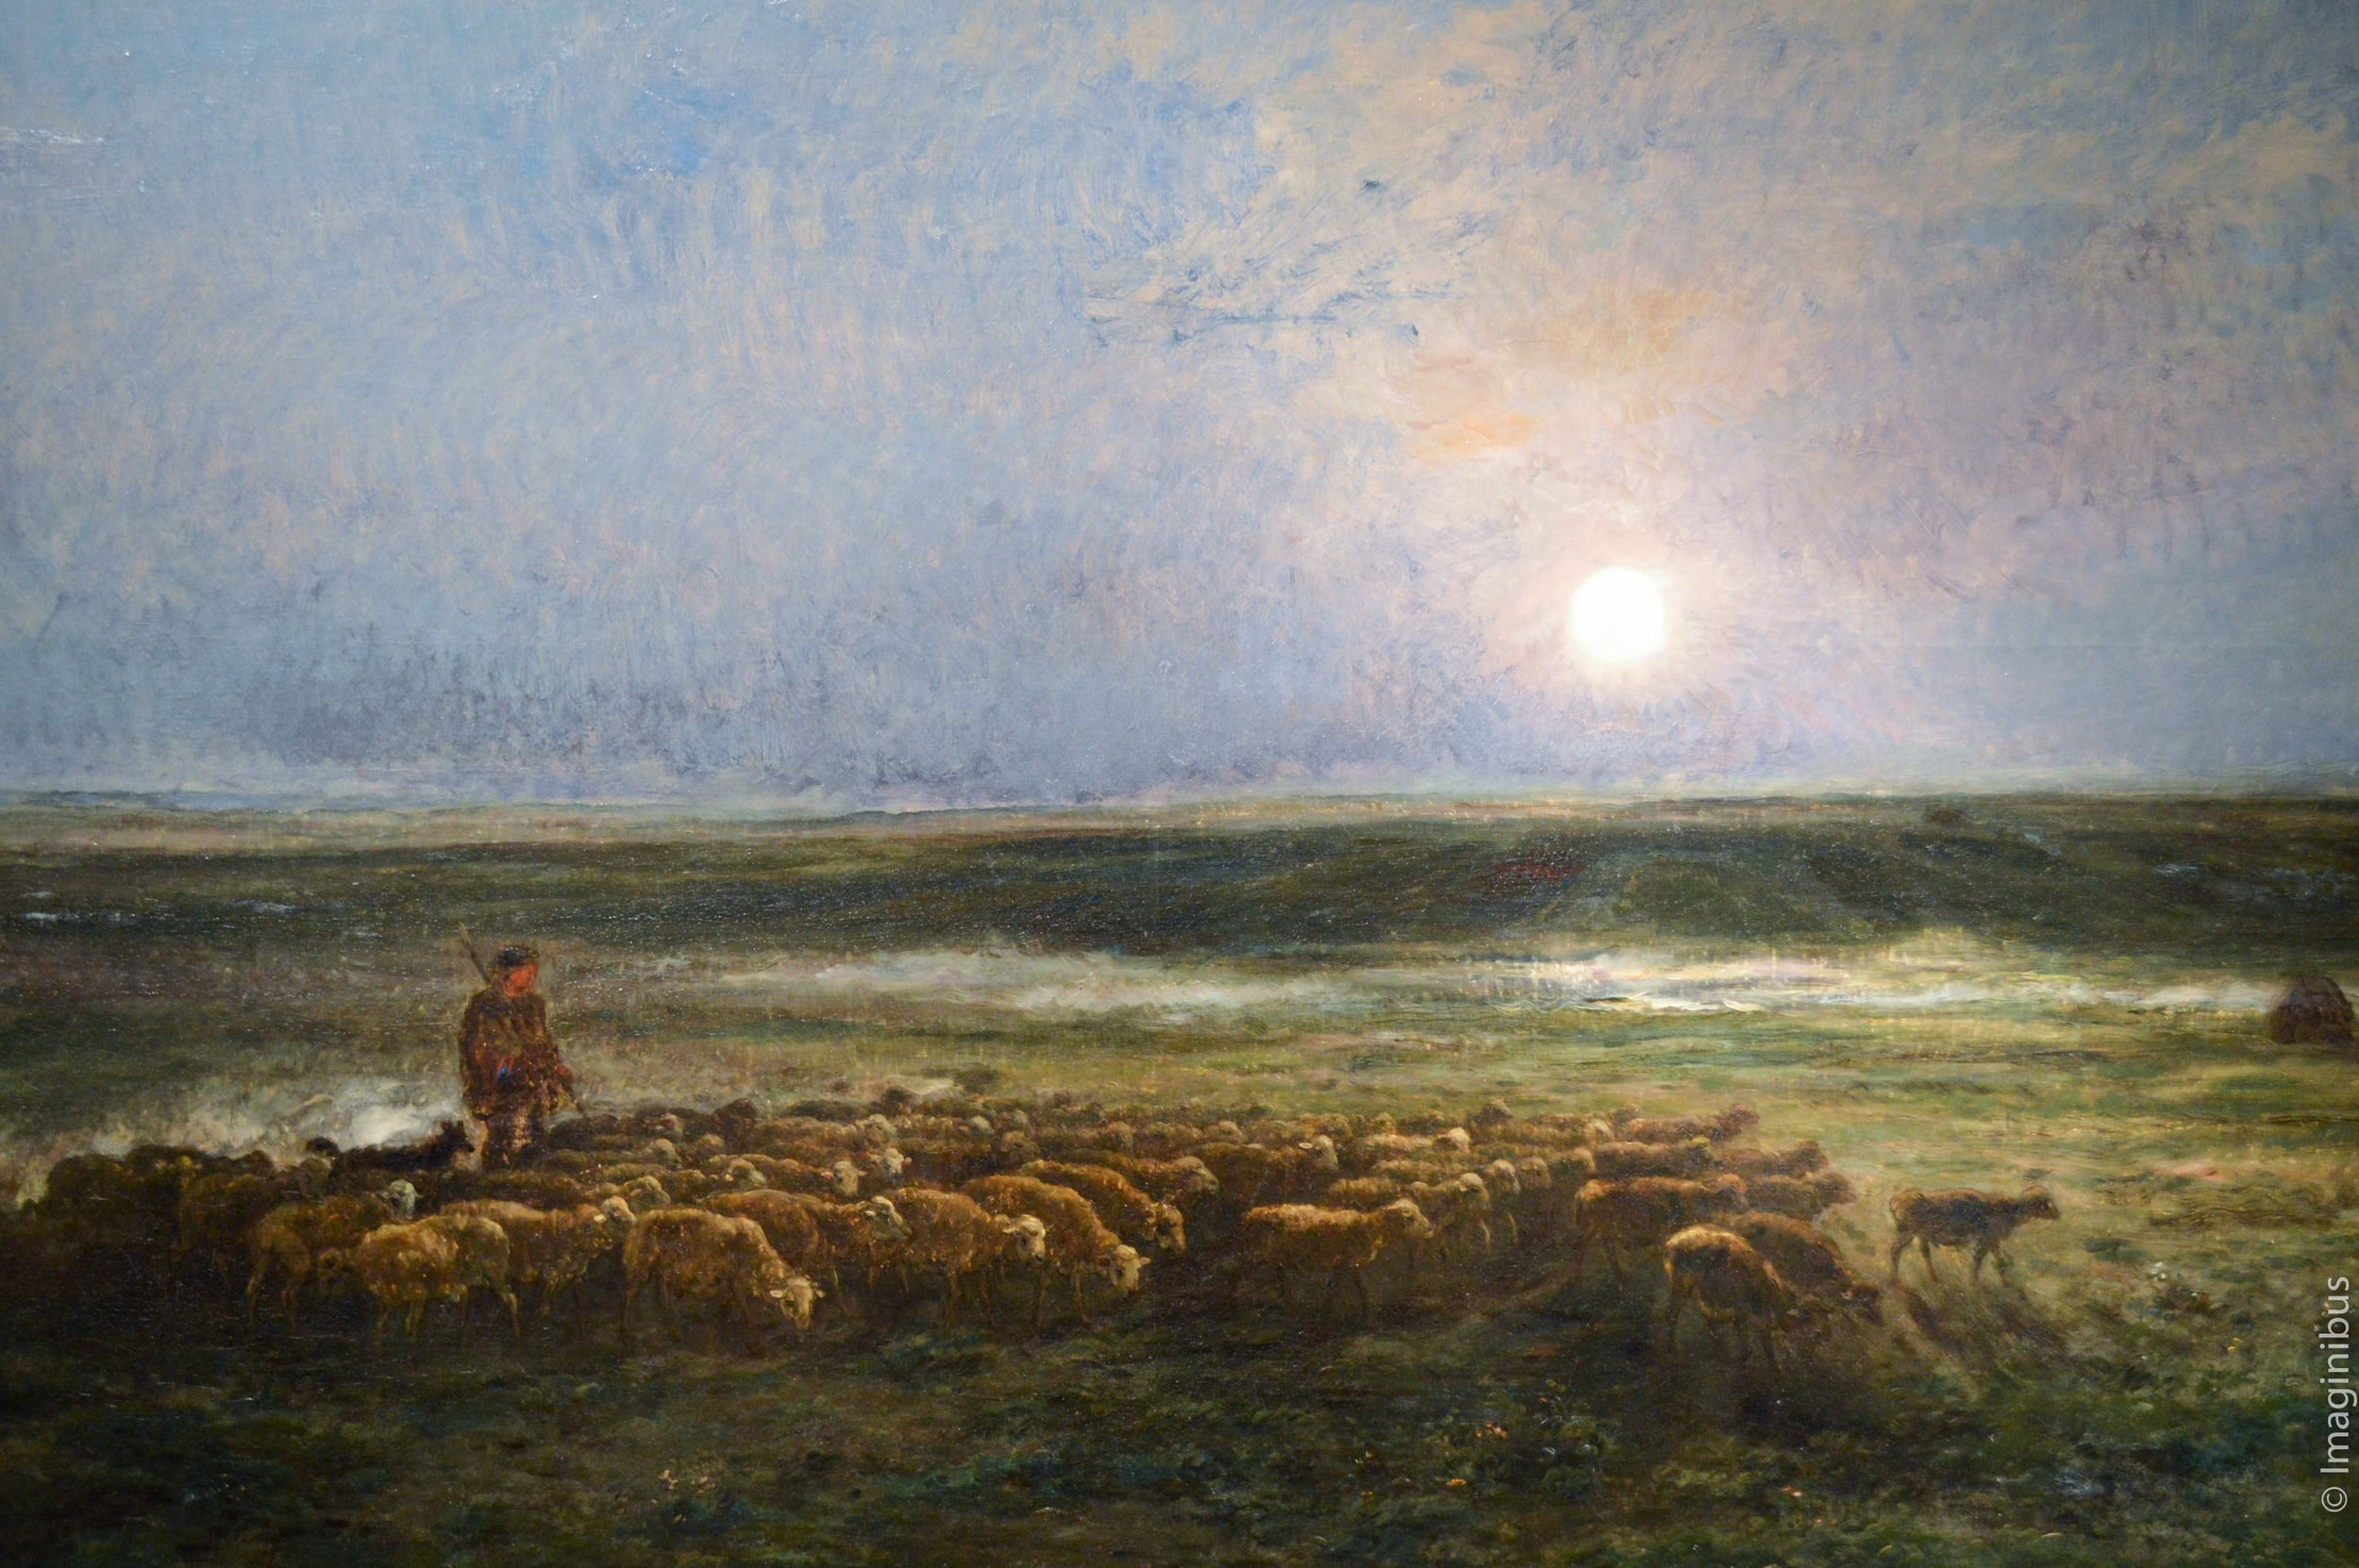 Montreal Museum of Fine Arts, Moonrise, Sheep